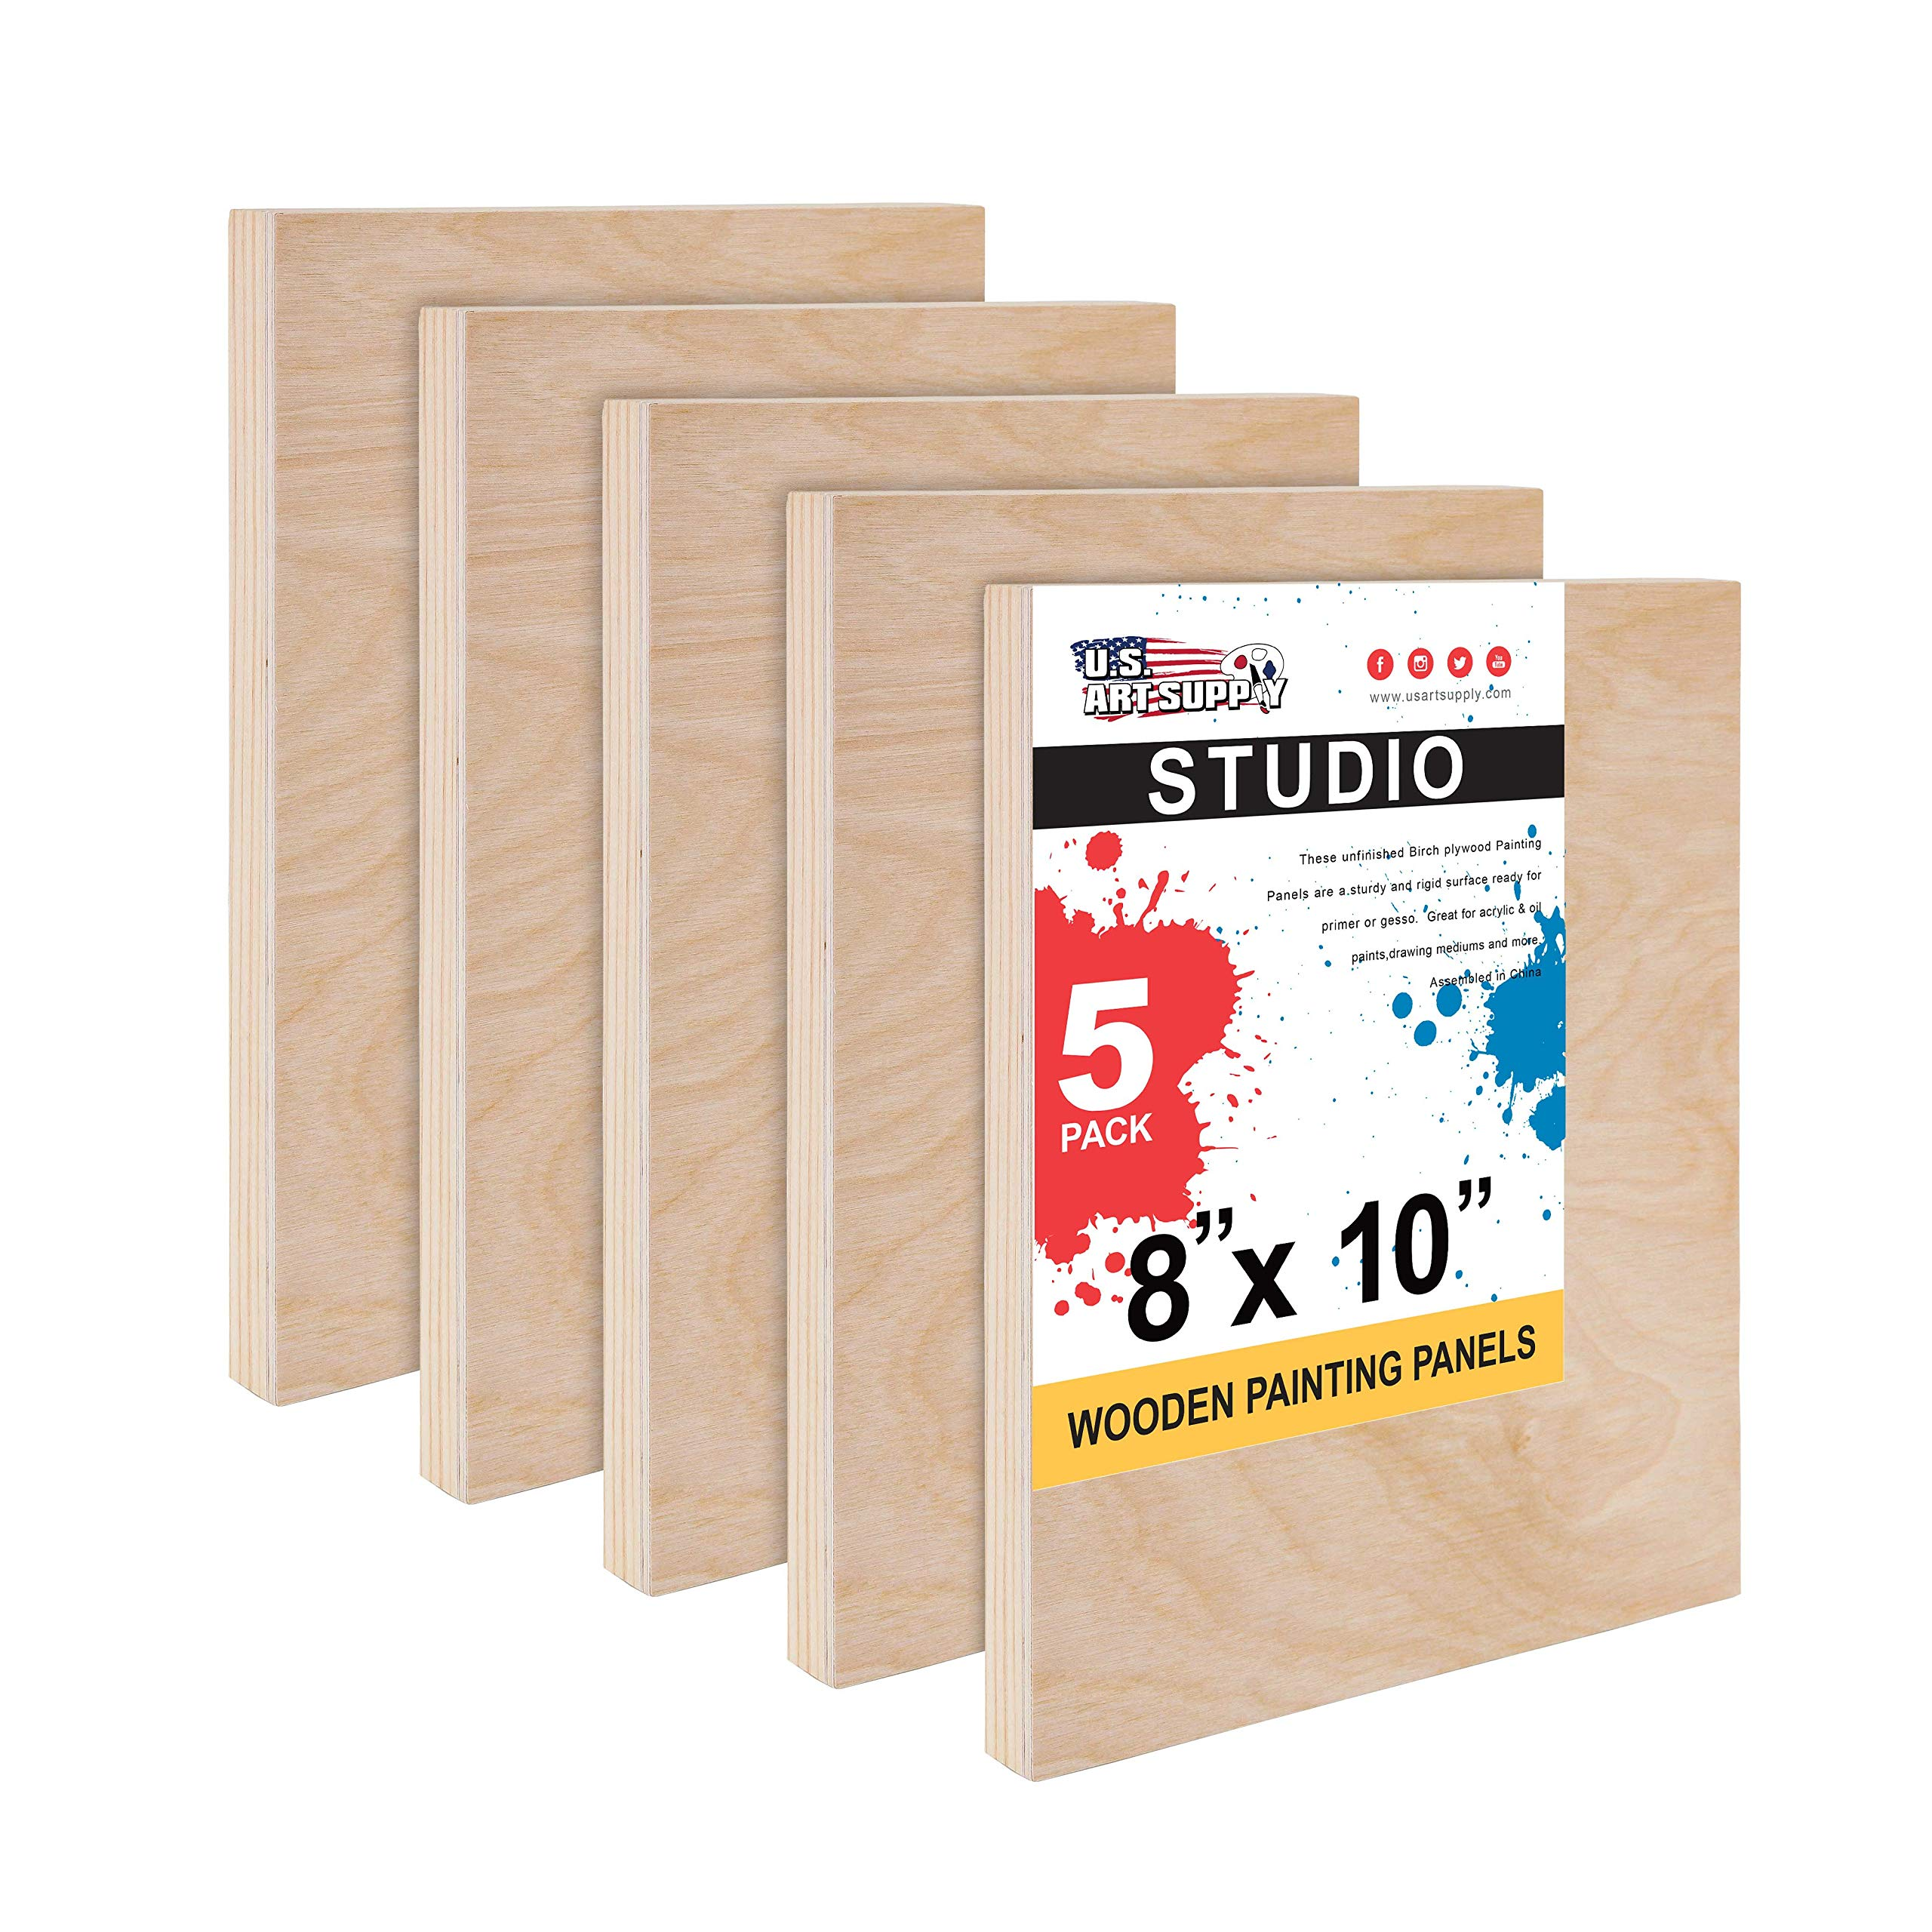 """U.S. Art Supply 8"""" x 10"""" Birch Wood Paint Pouring Panel Boards, Studio 3/4"""" Deep Cradle (Pack of 5) - Artist Wooden Wall Canvases - Painting Mixed-Media Craft, Acrylic, Oil, Watercolor, Encaustic"""